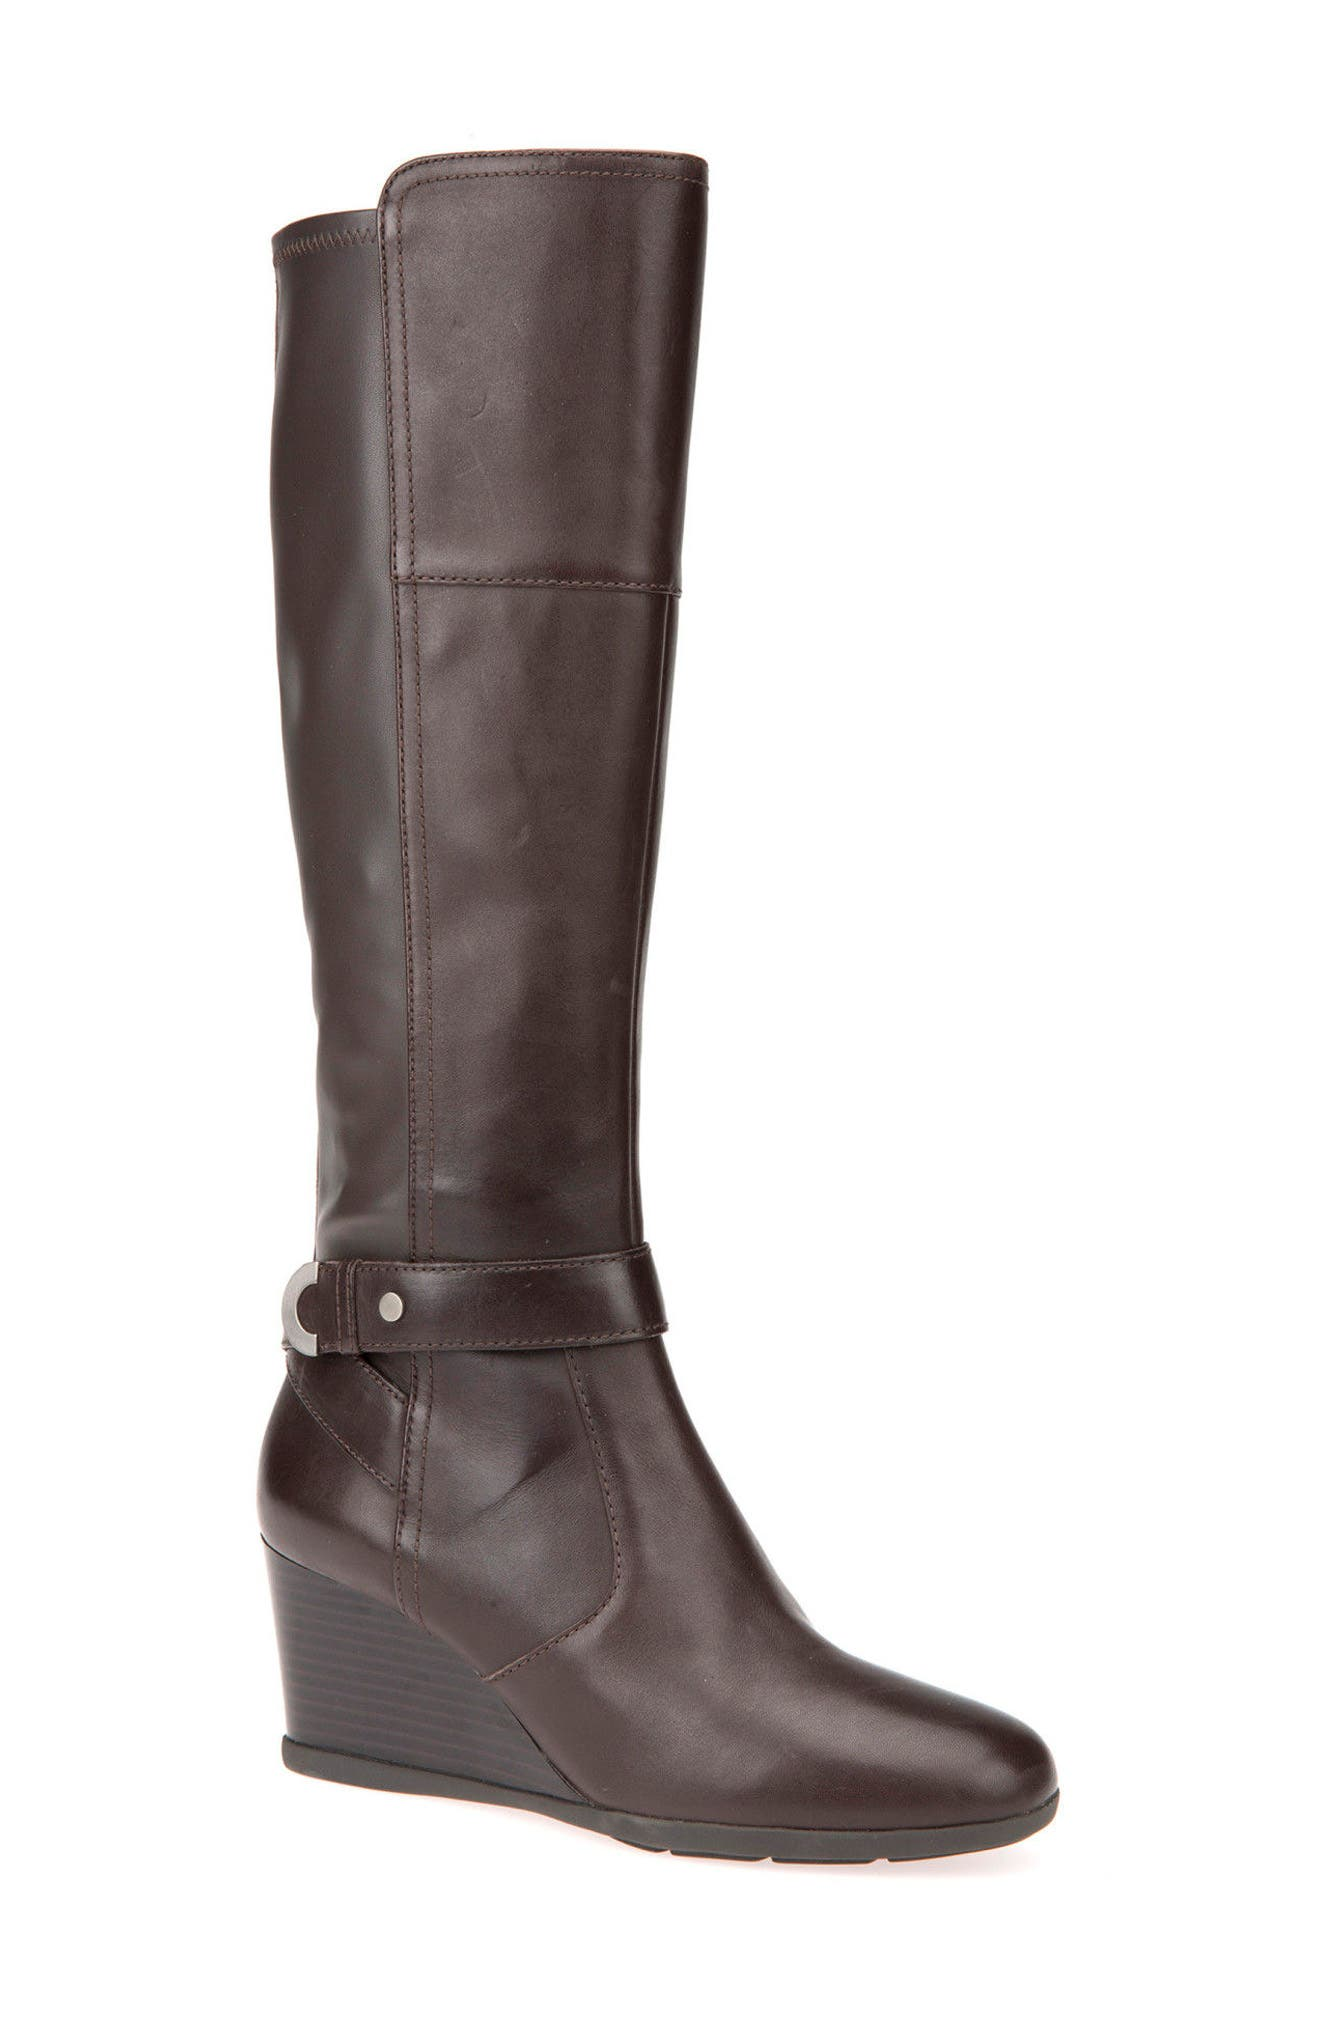 Geox Inspiration Knee High Wedge Boot, Brown